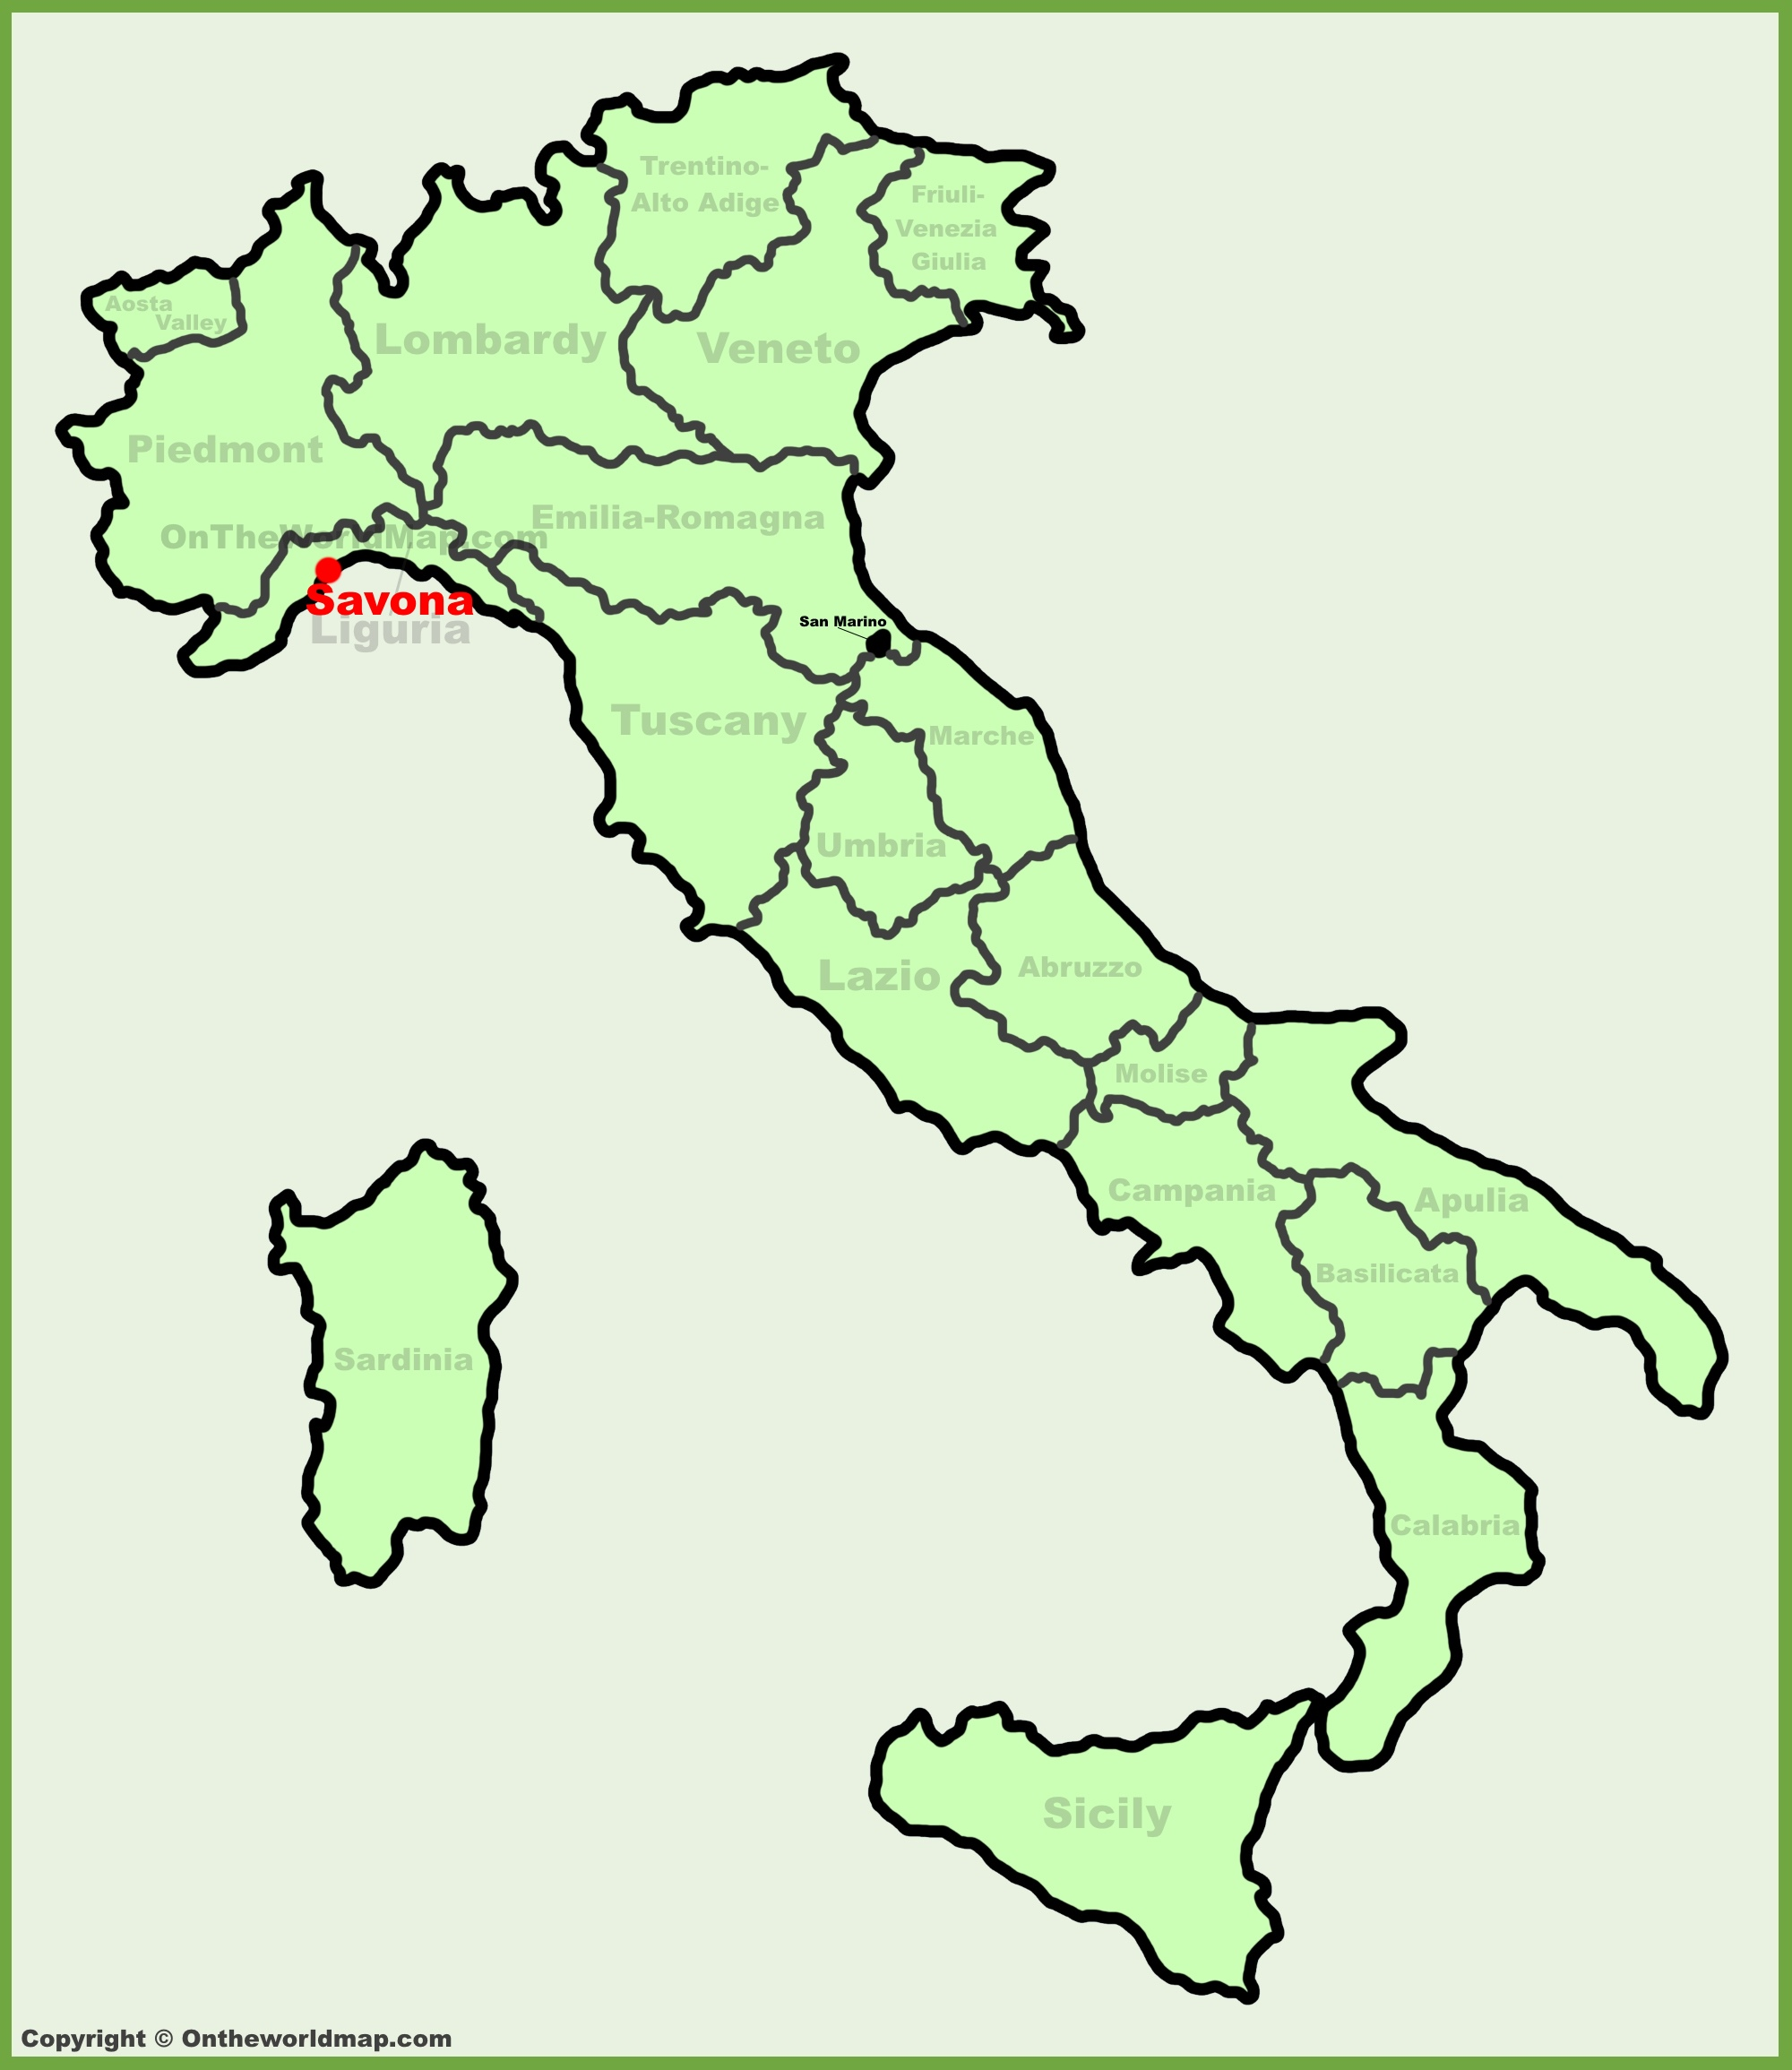 Savona location on the Italy map